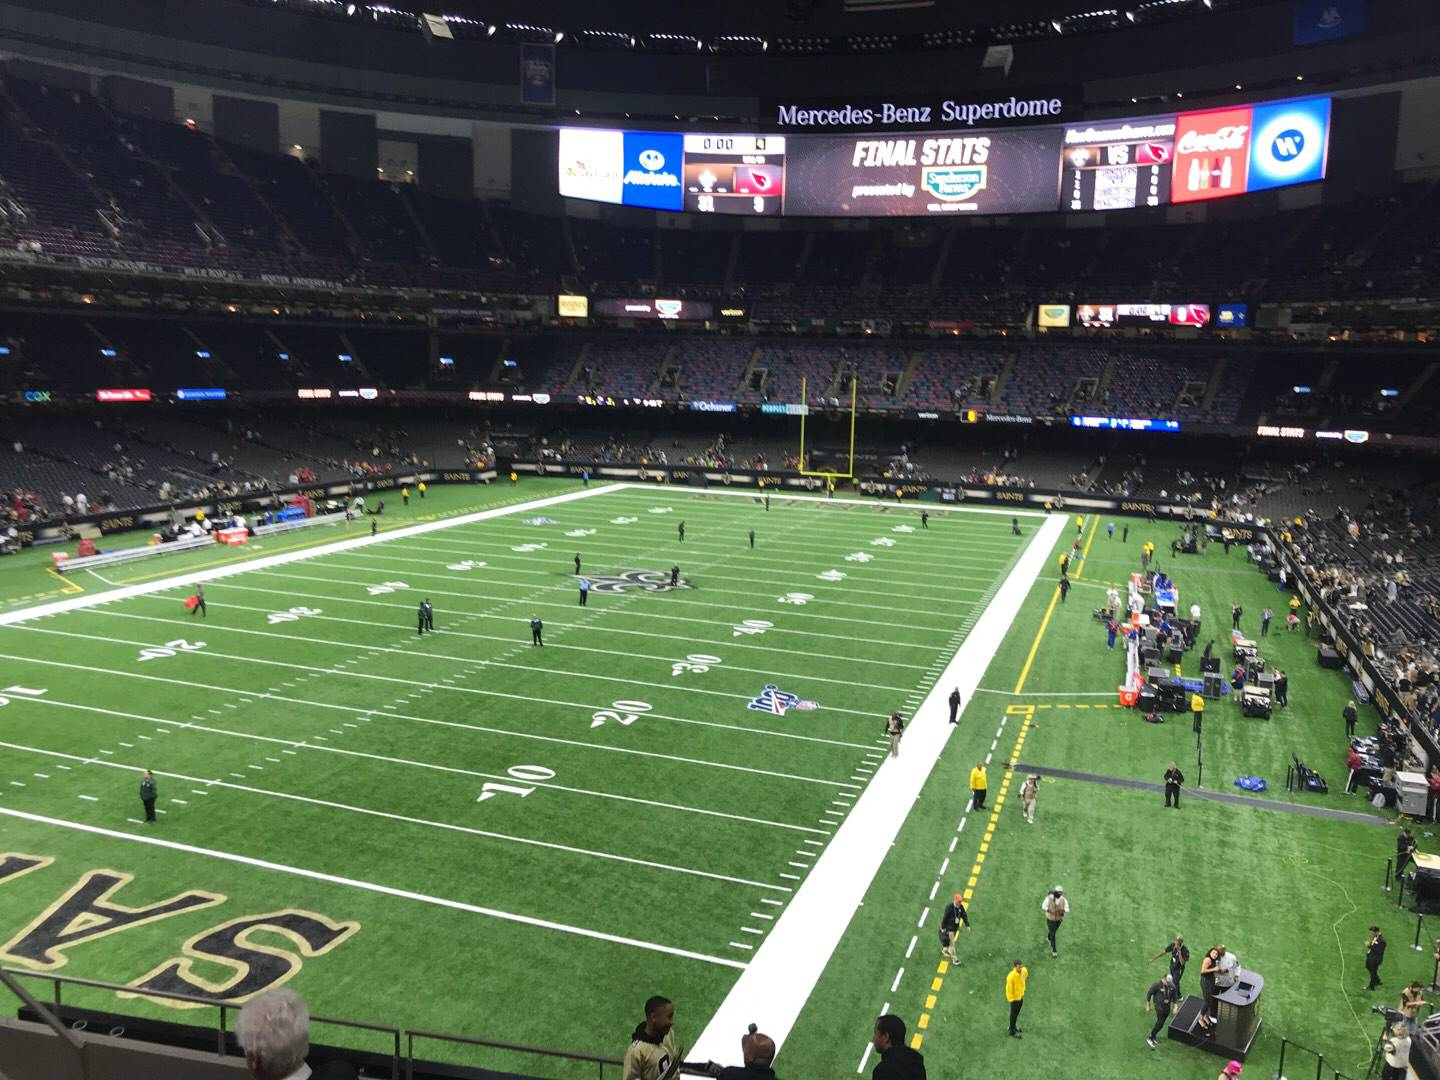 Mercedes-Benz Superdome Section 345 Row 10 Seat 13